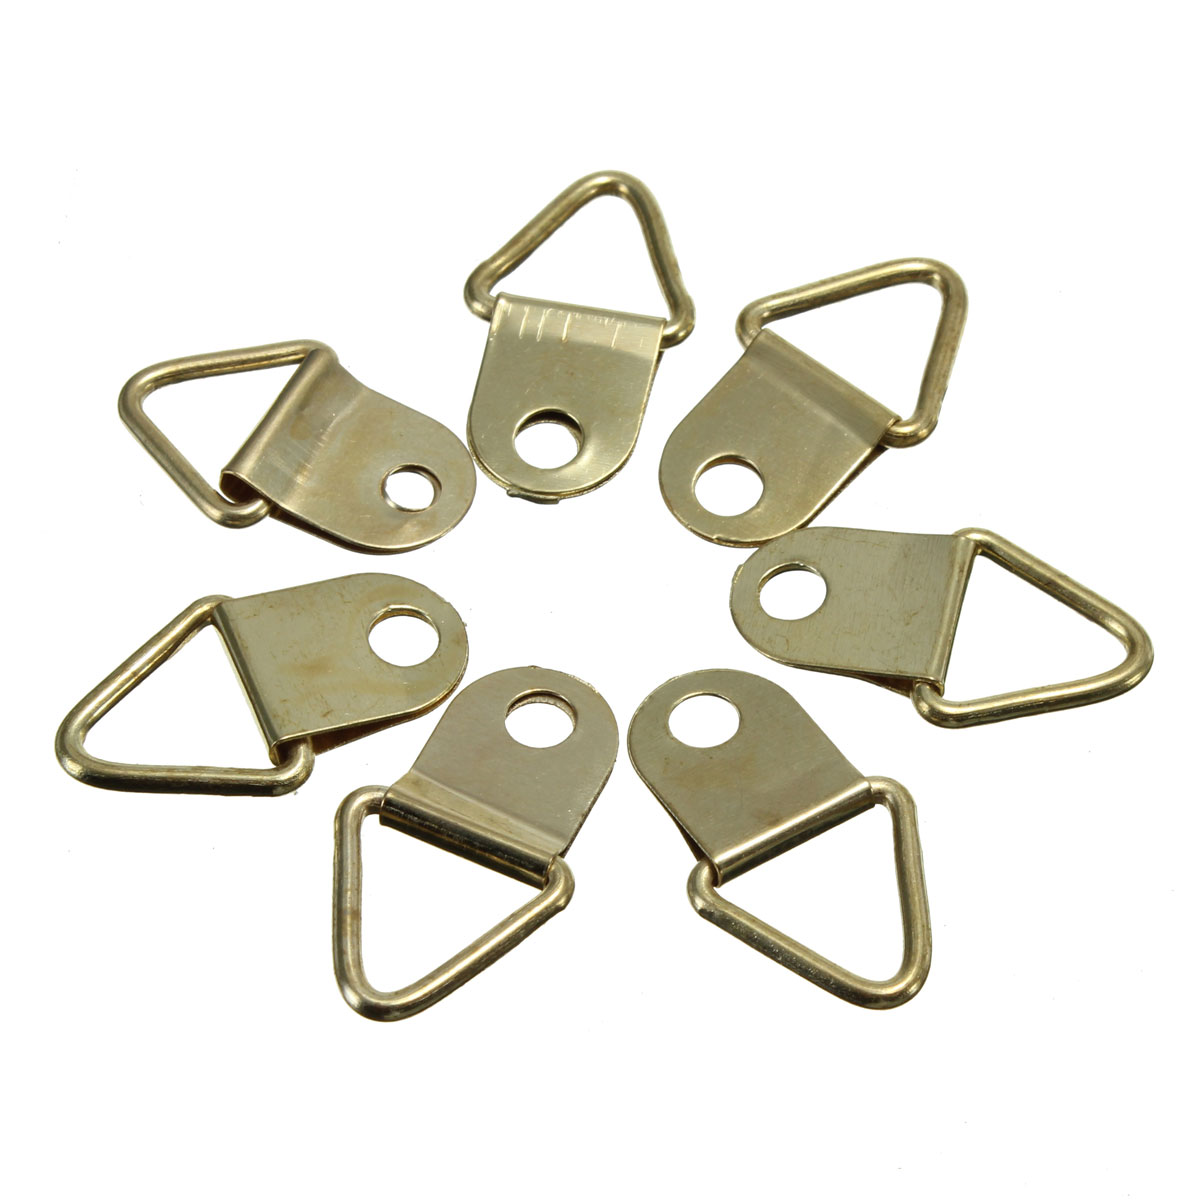 MTGATHER Universal Strong Golden 50pcs D Rings Decor Picture Frames Hanger Hooks Hanging Triangle Screws Helper(China)